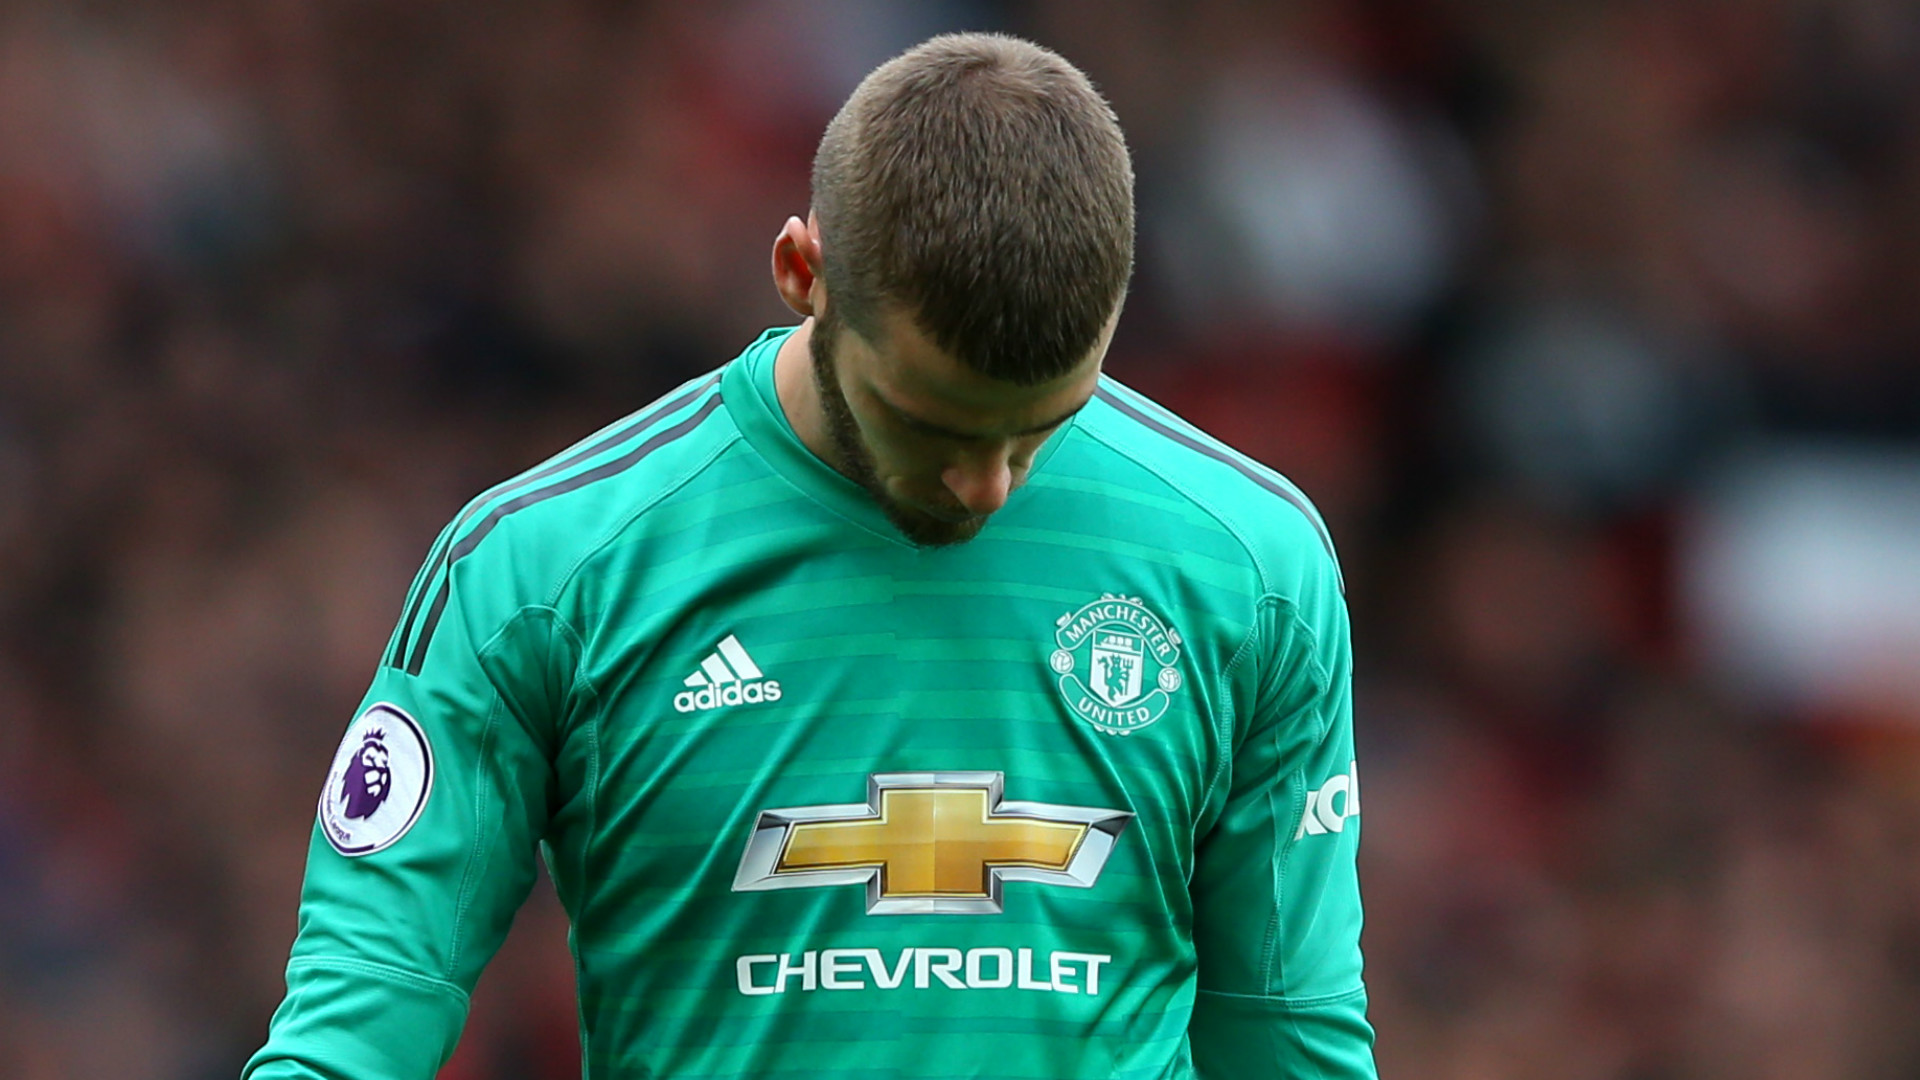 The stats that shame Man Utd goalkeeper David de Gea